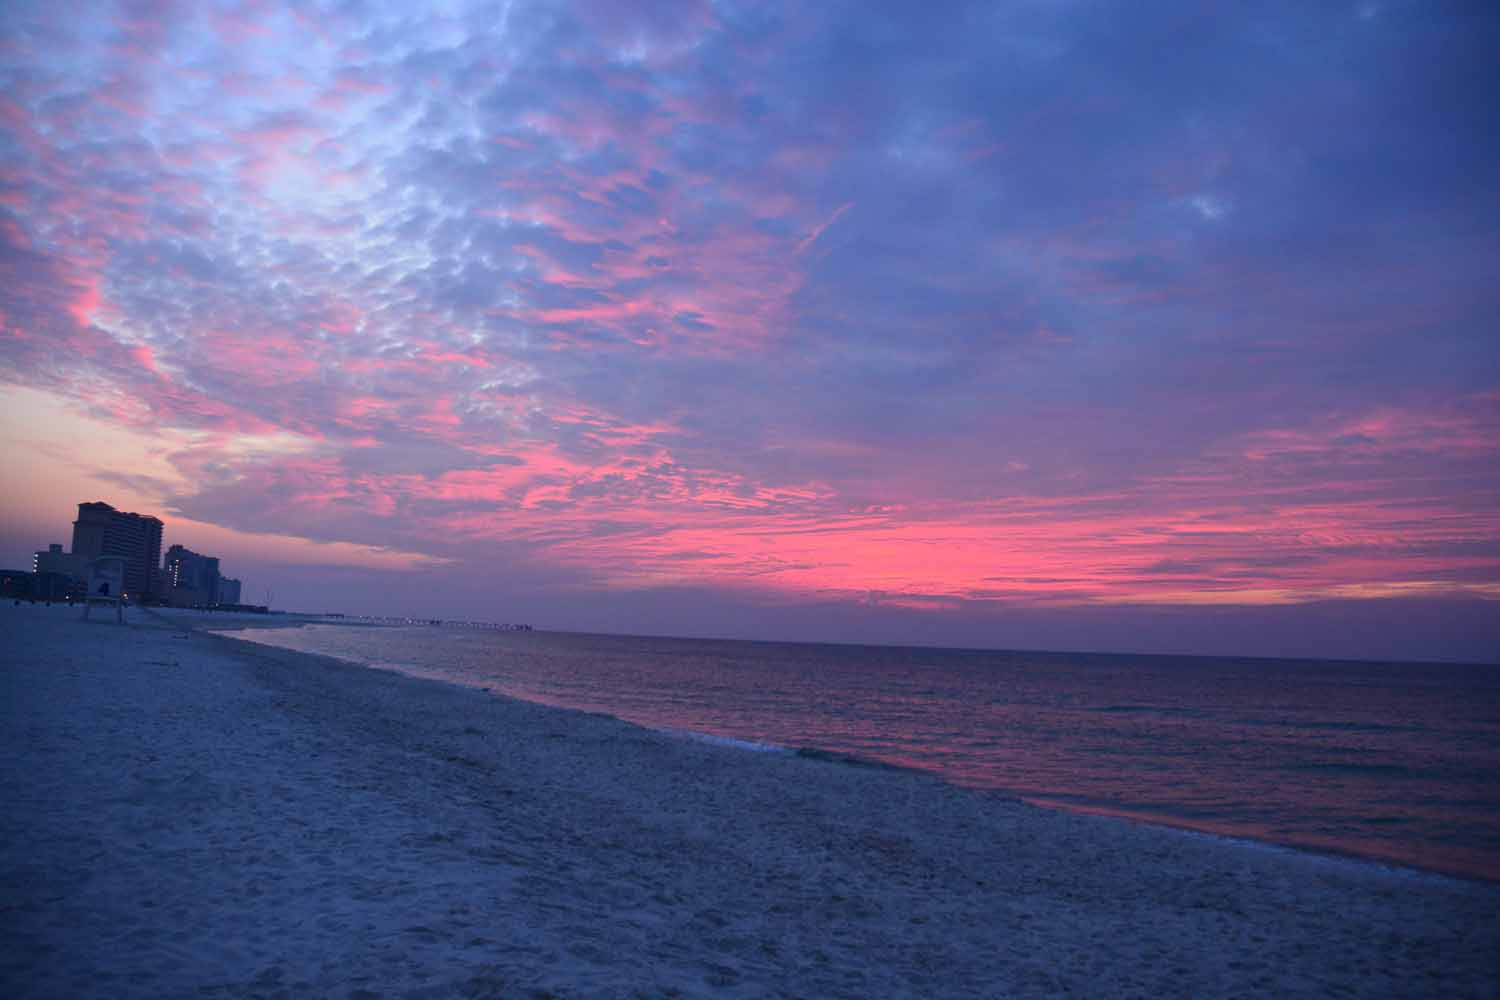 What is a blog post without a sunrise and sunset shots...Sunrise Gulf Shores